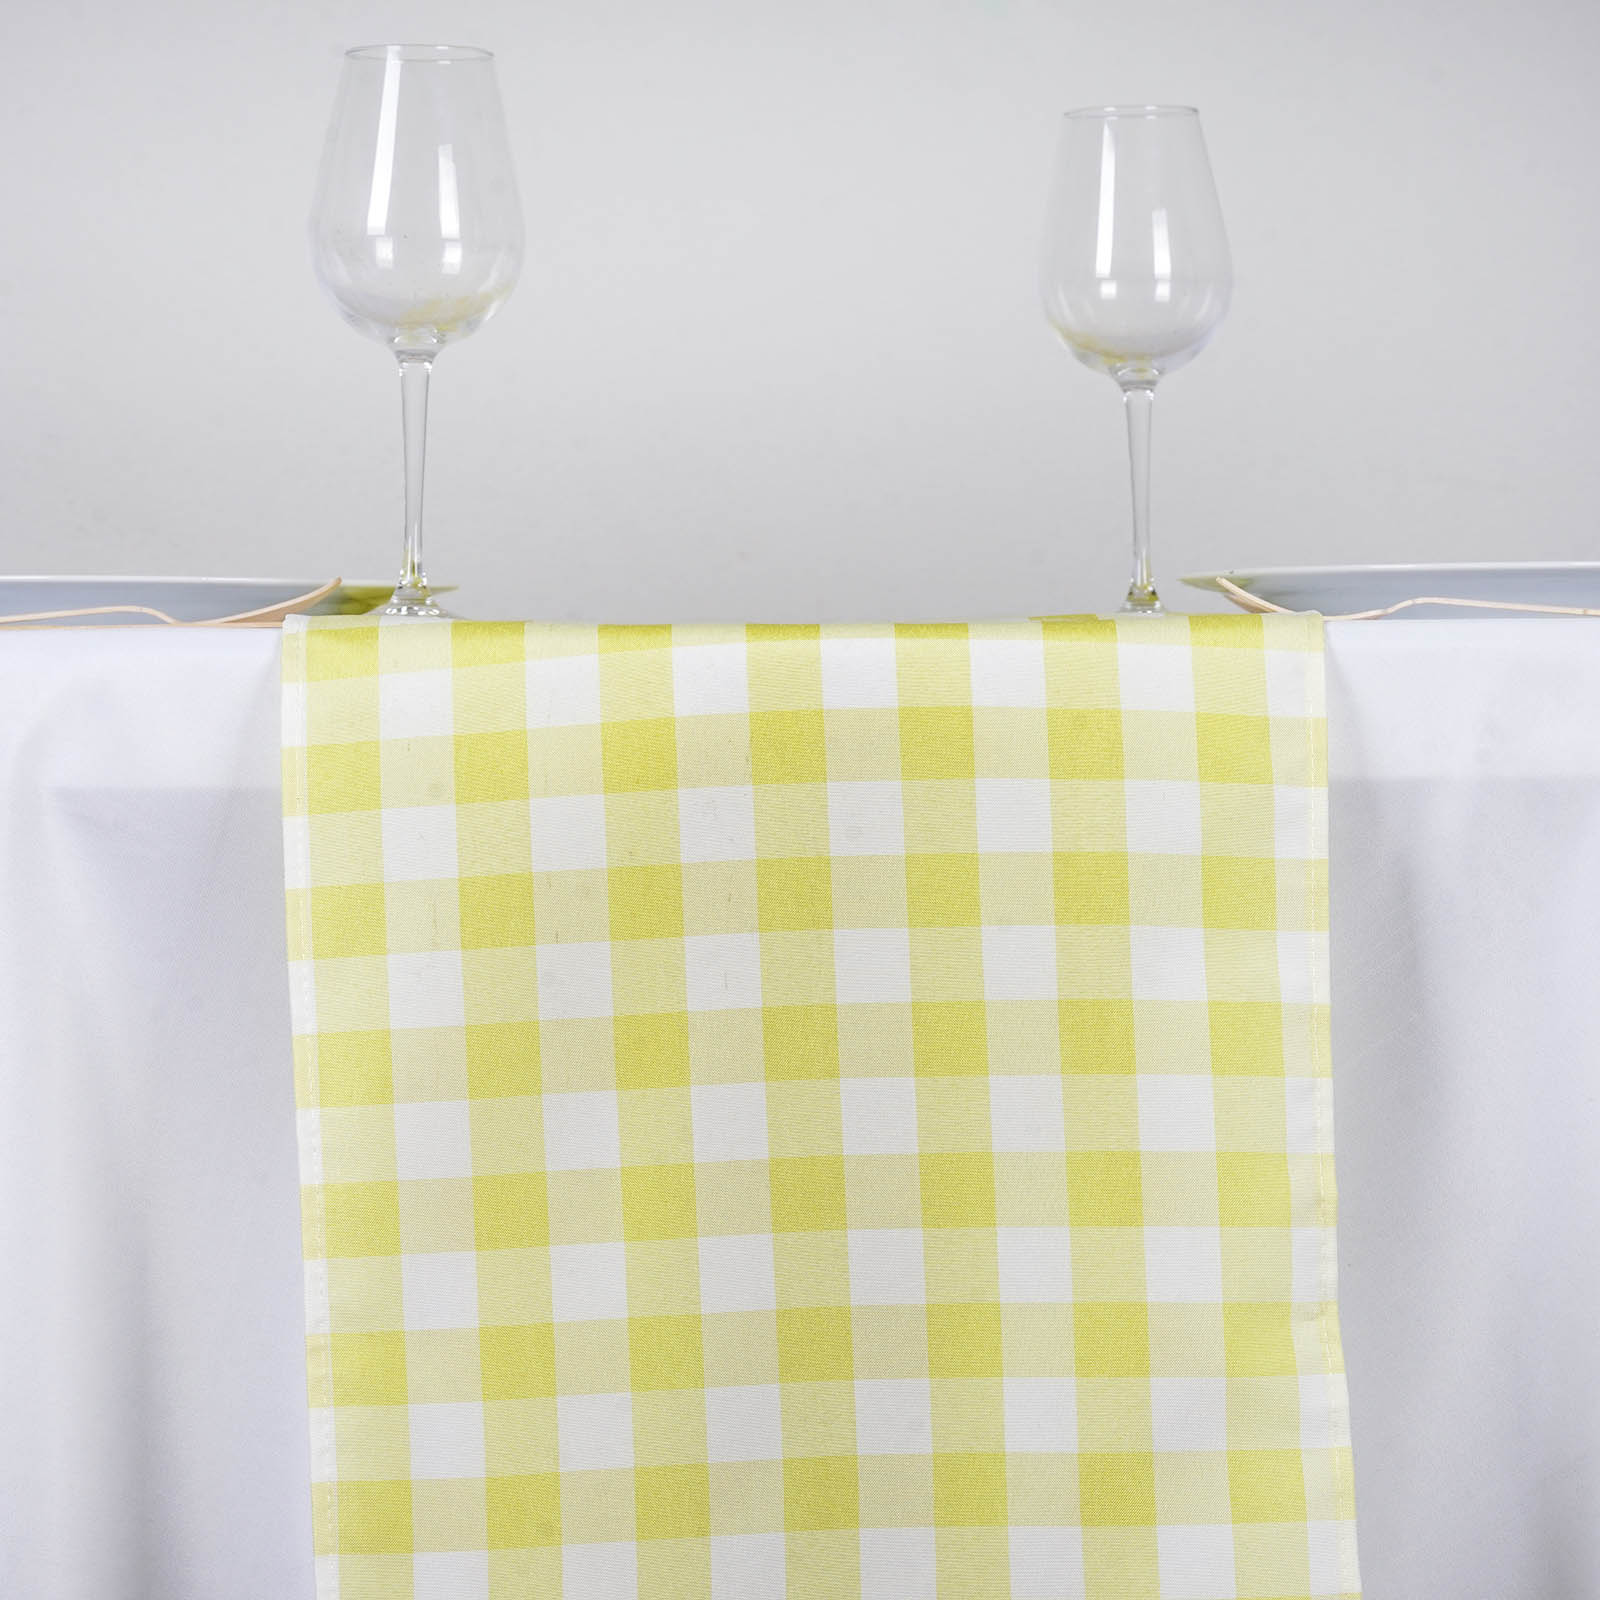 14 x 108 checkered gingham table runner polyester for 108 table runner